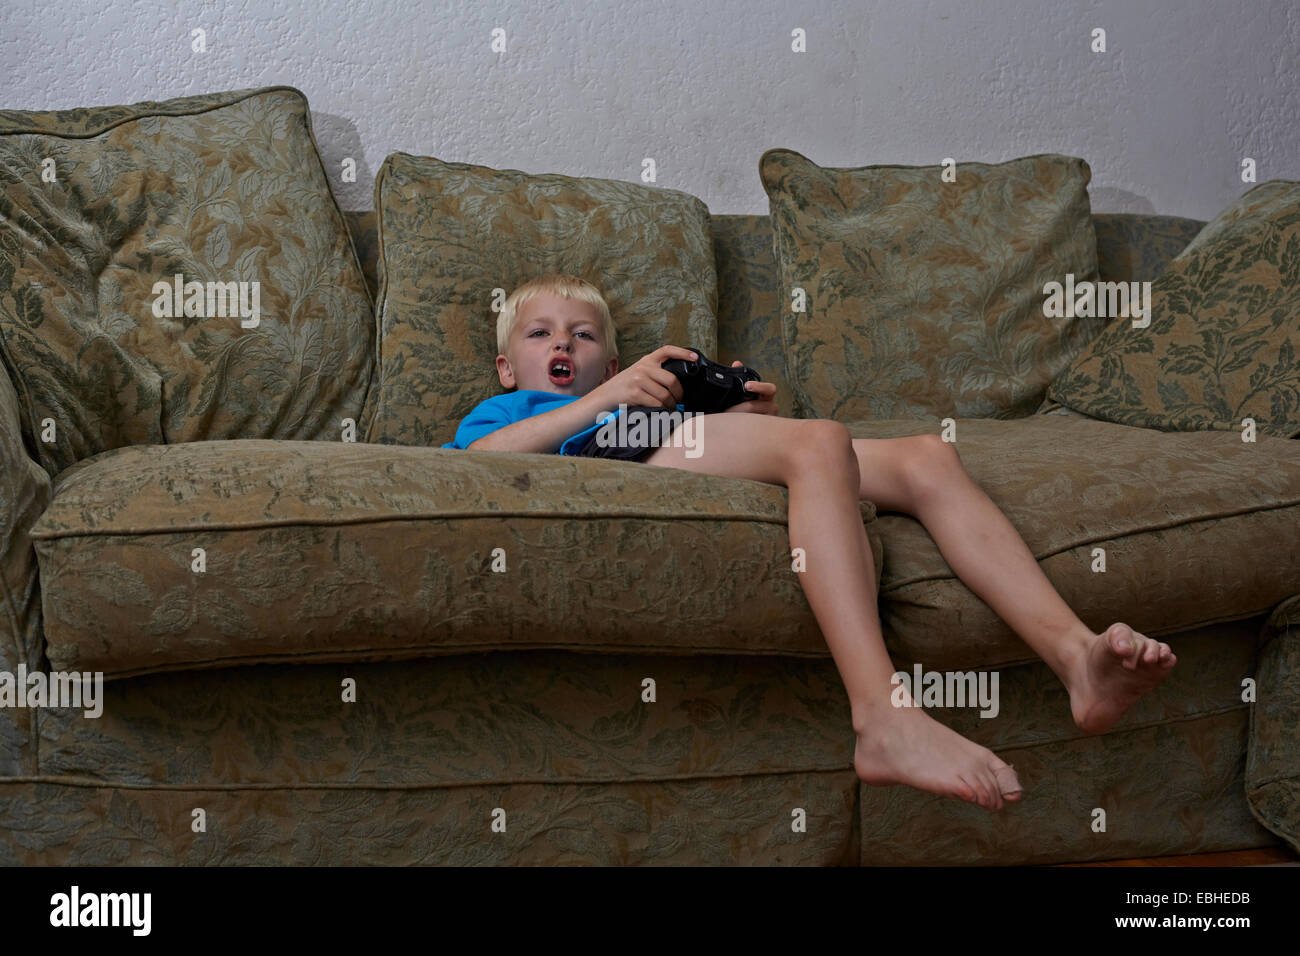 Boy playing video game in living room - Stock Image